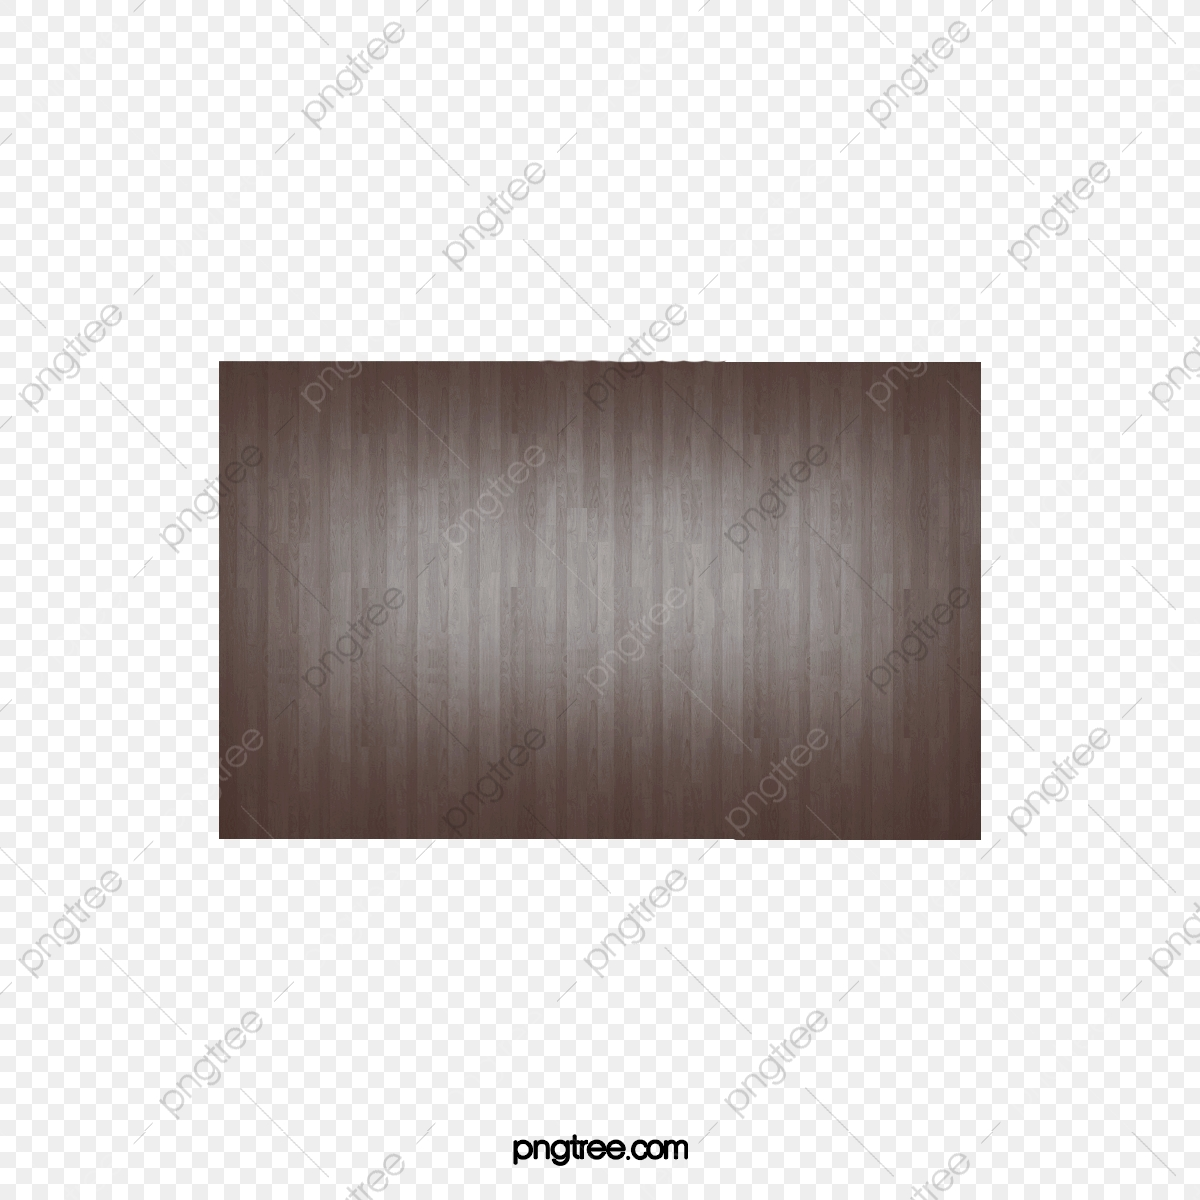 Black Plank Background, Wood Texture, Wood Floor, Wooden.